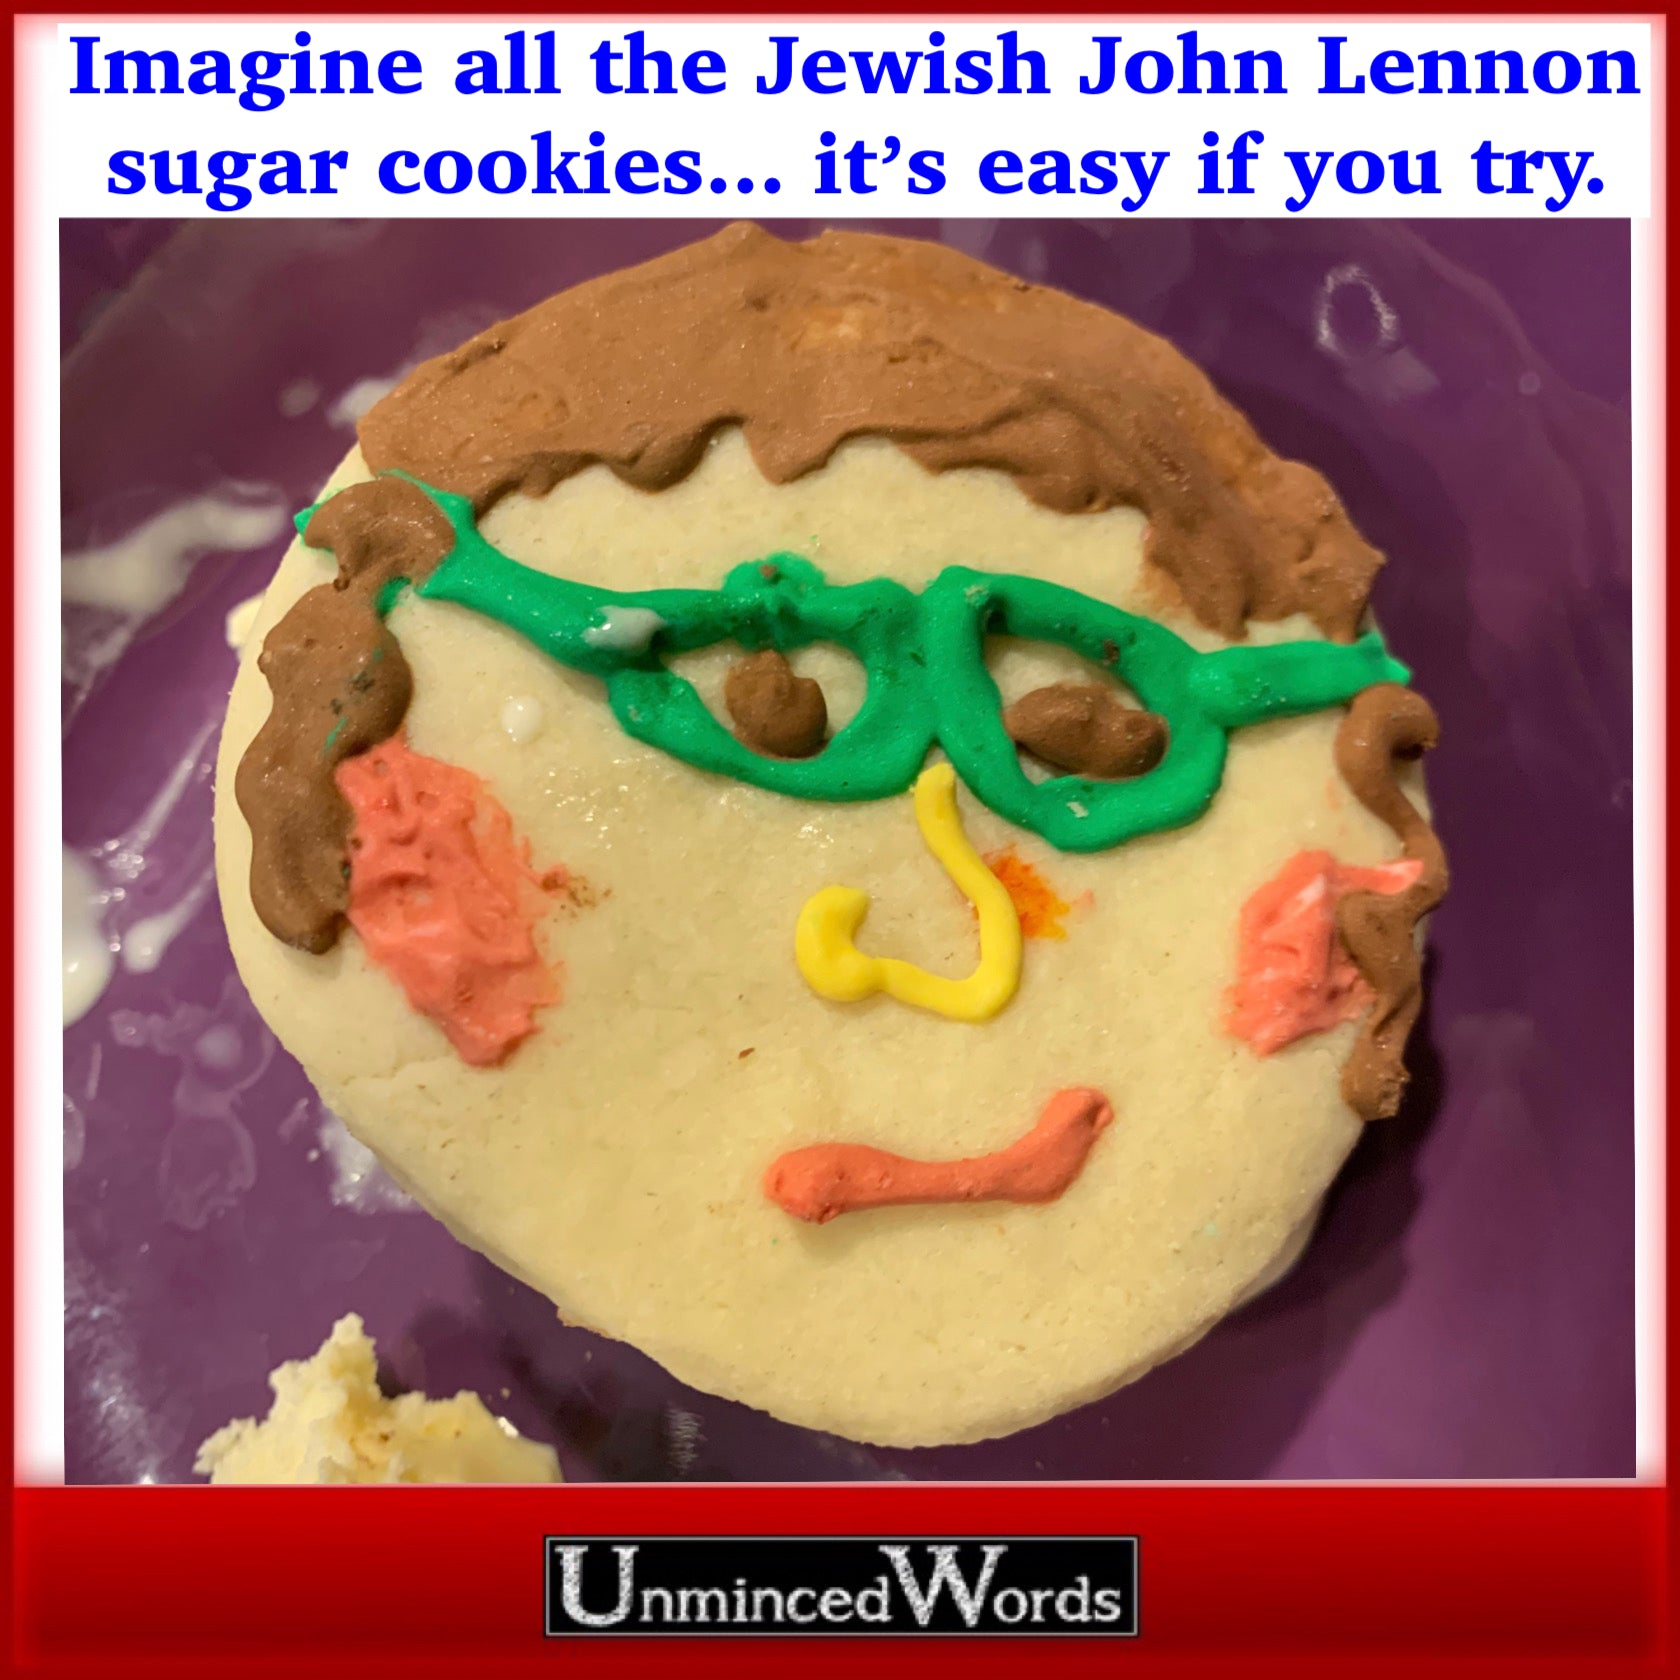 Imagine all the Jewish John Lennon sugar cookies... it's easy if you try.